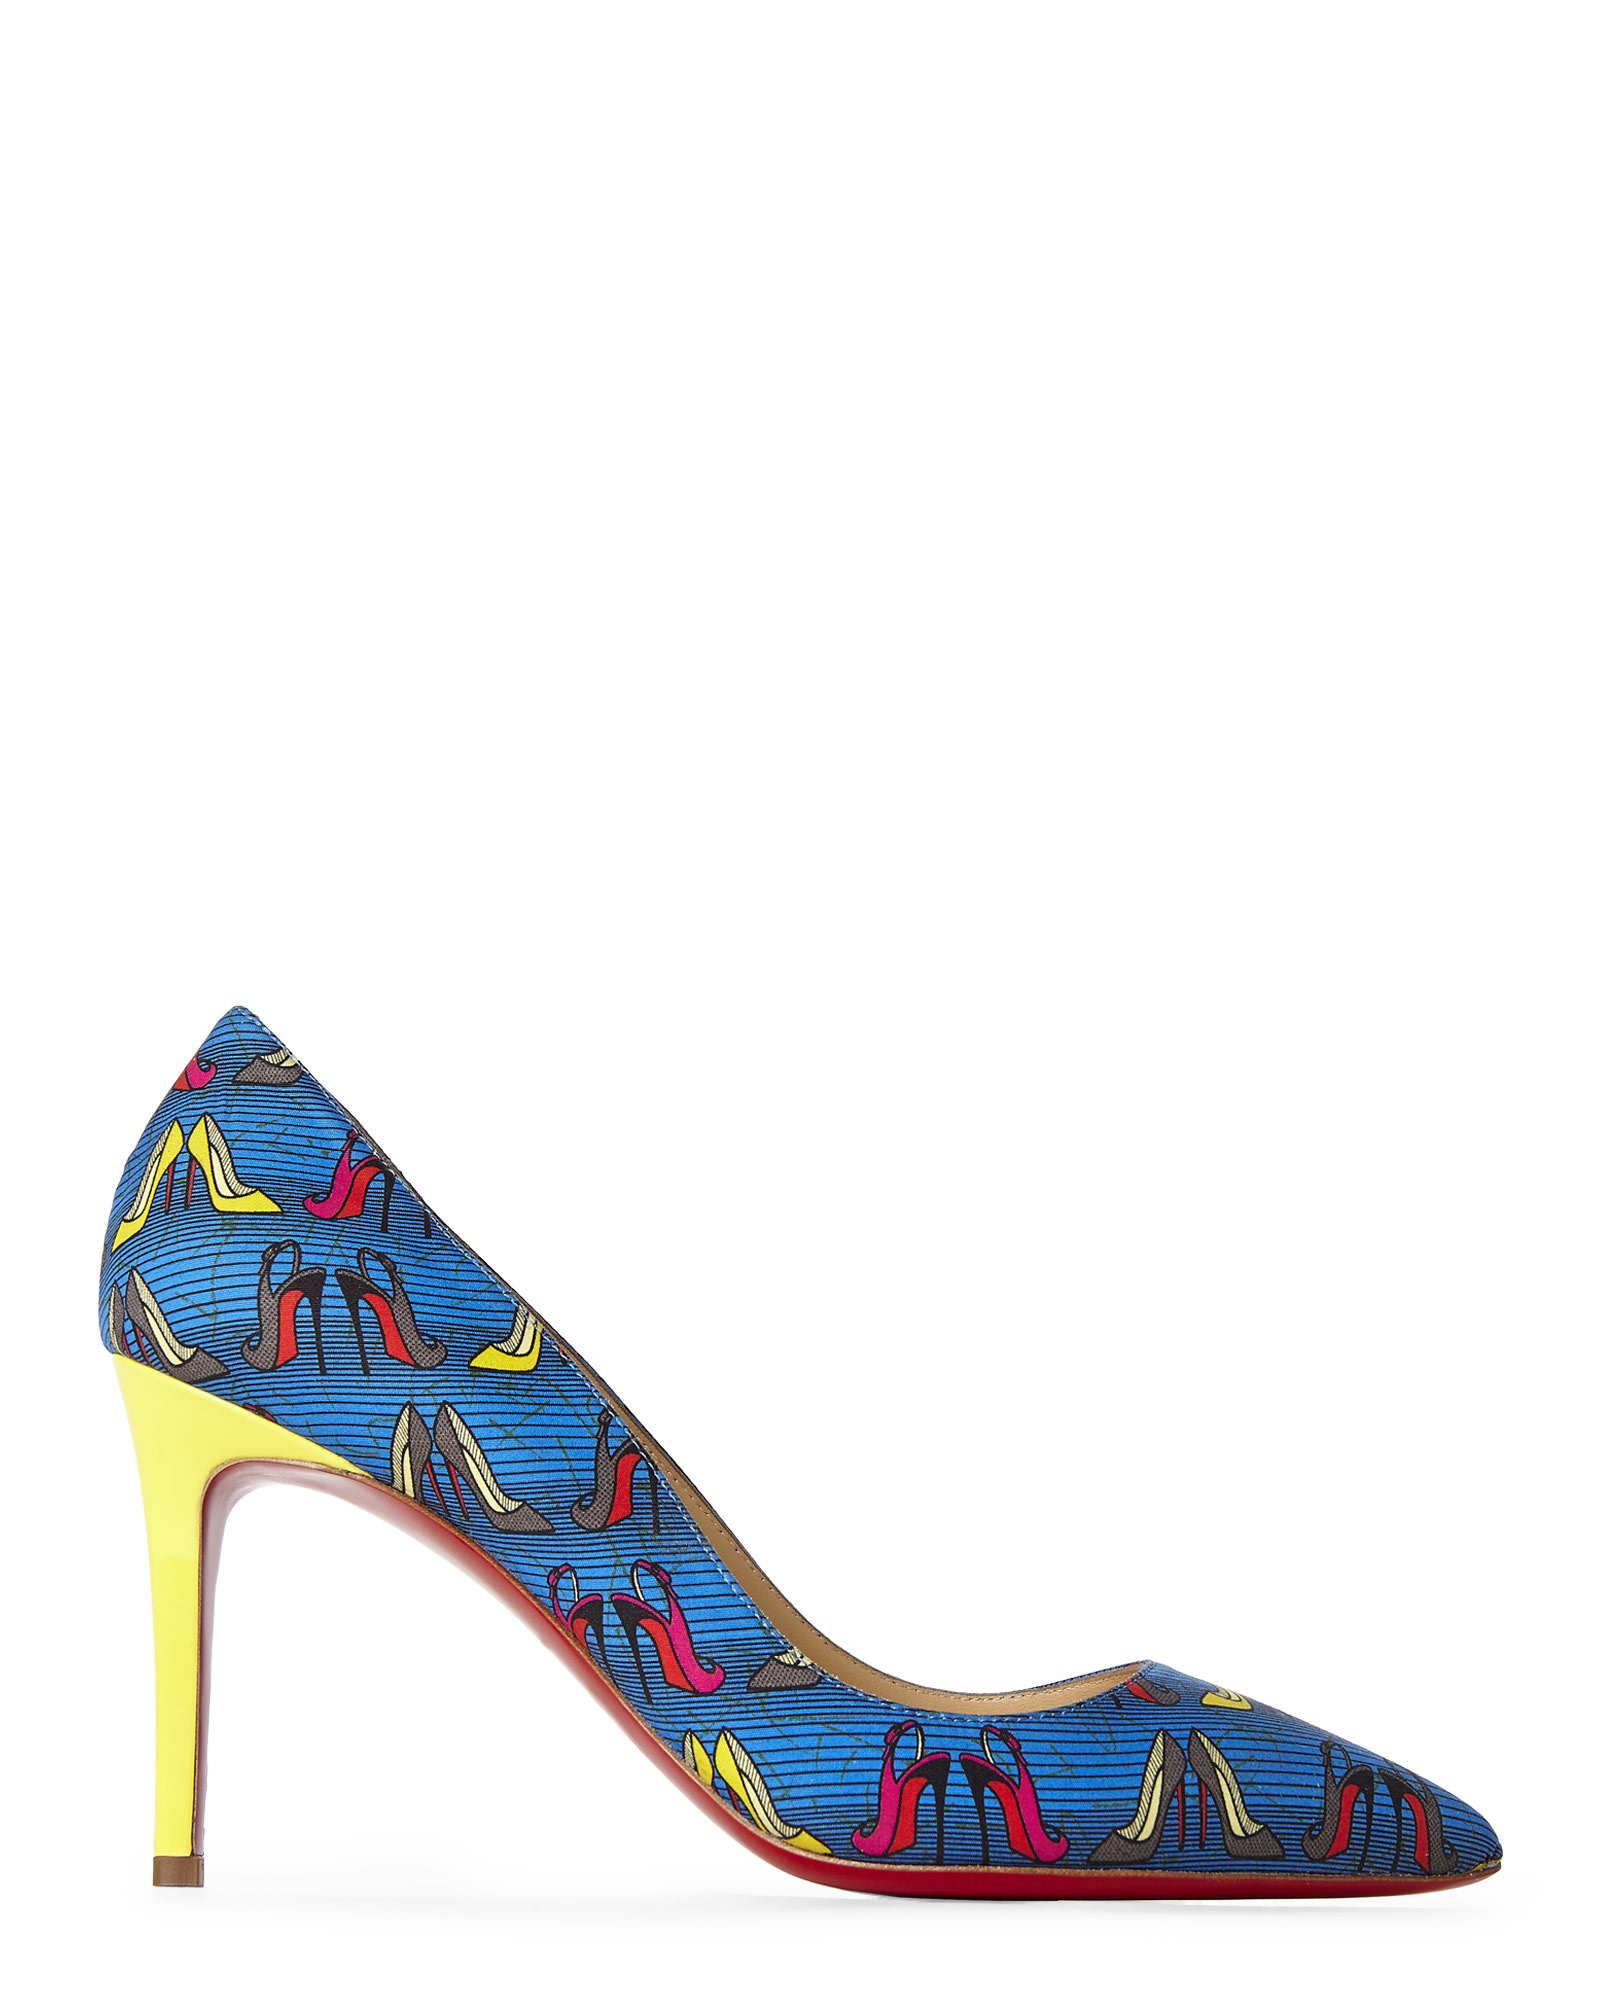 a0721888123 Gallery. Previously sold at  Century 21 · Women s Christian Louboutin  Pigalle ...